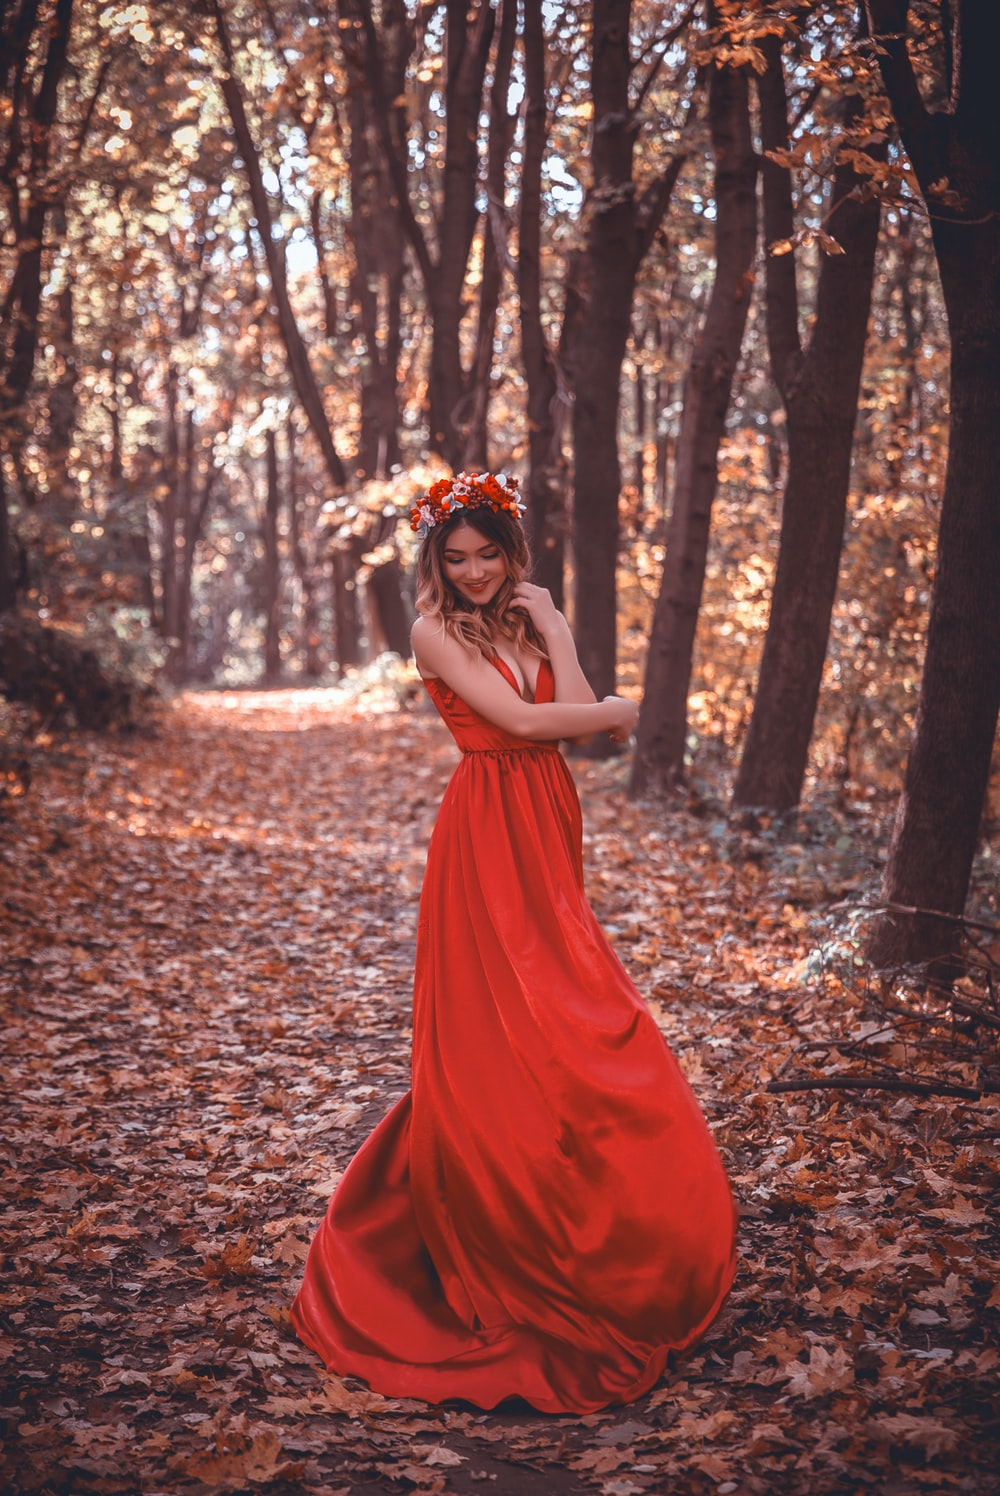 woman in red dress surrounded by trees